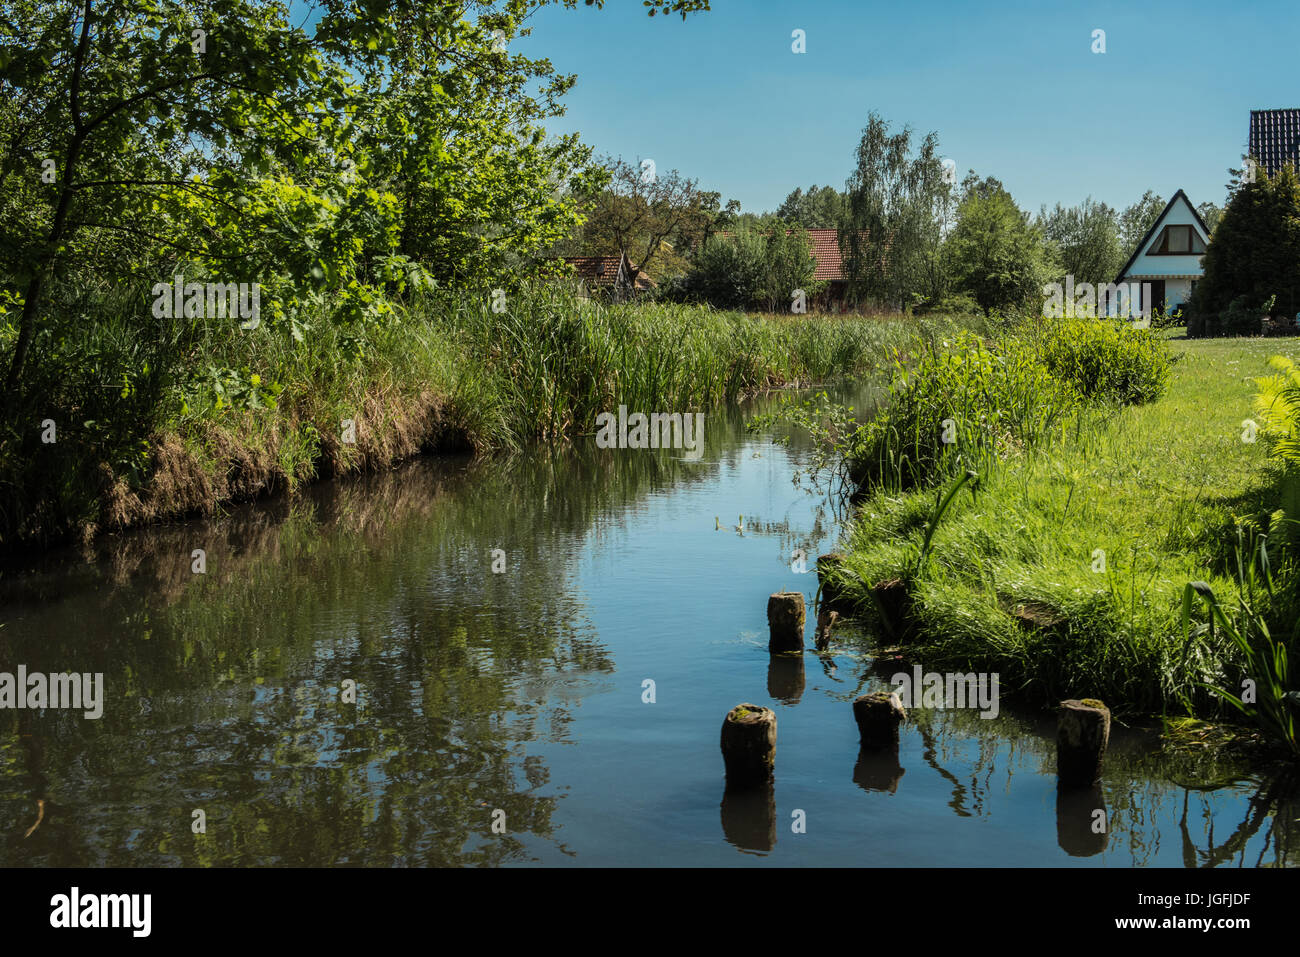 Blue sky over river with trees and reflection Stock Photo